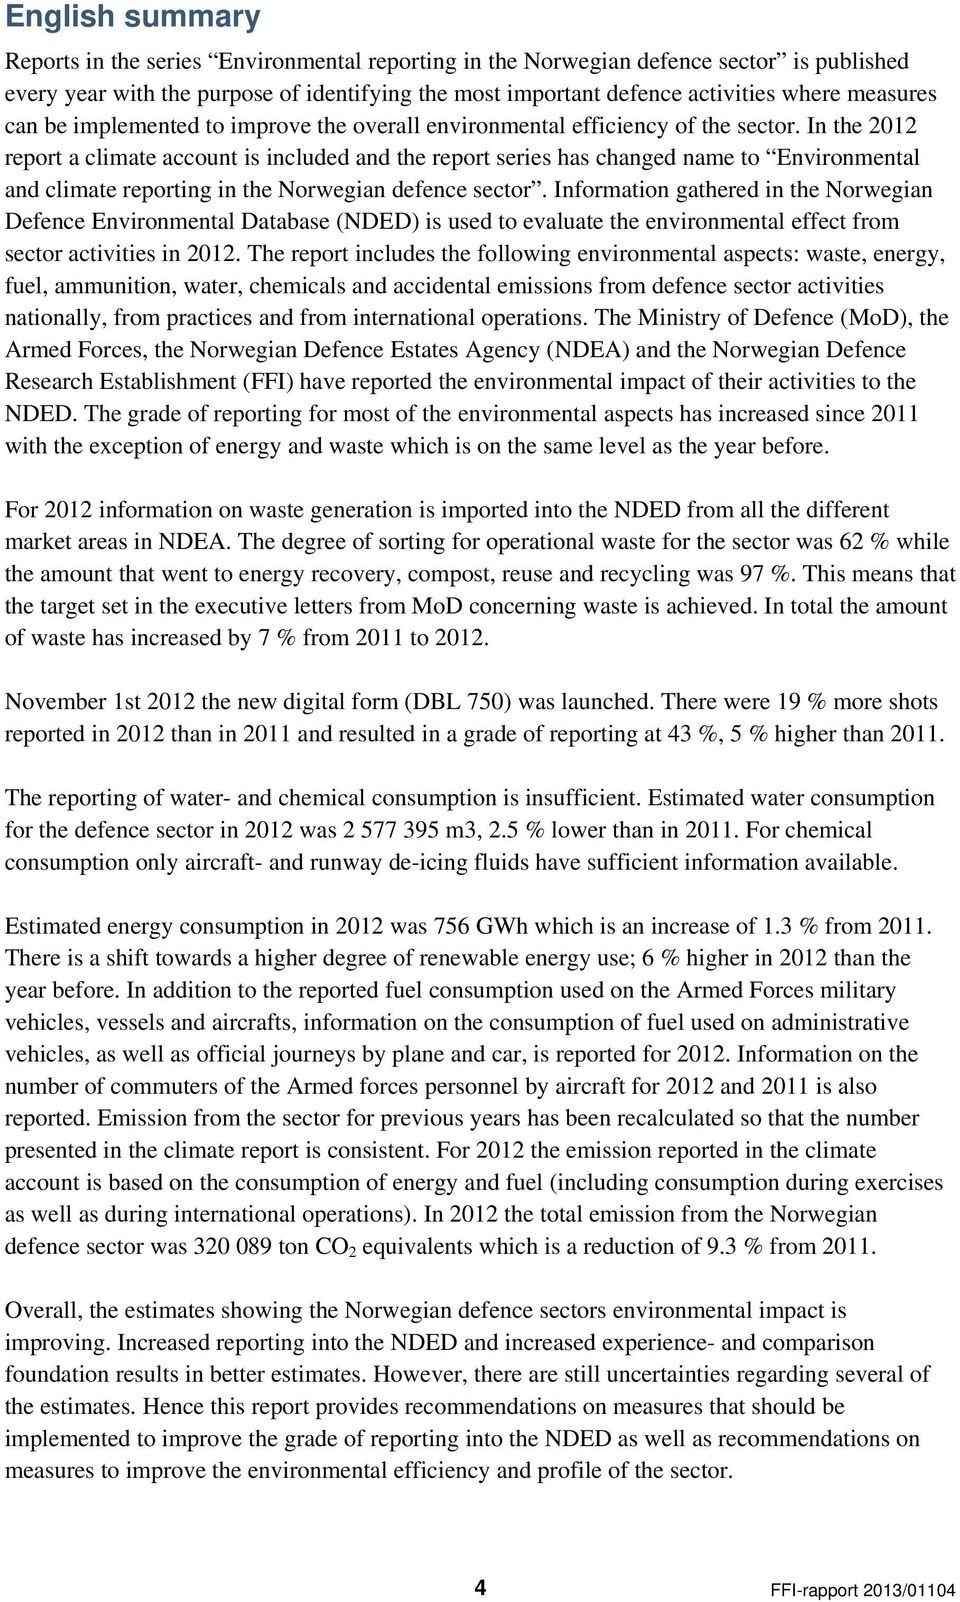 In the 2012 report a climate account is included and the report series has changed name to Environmental and climate reporting in the Norwegian defence sector.